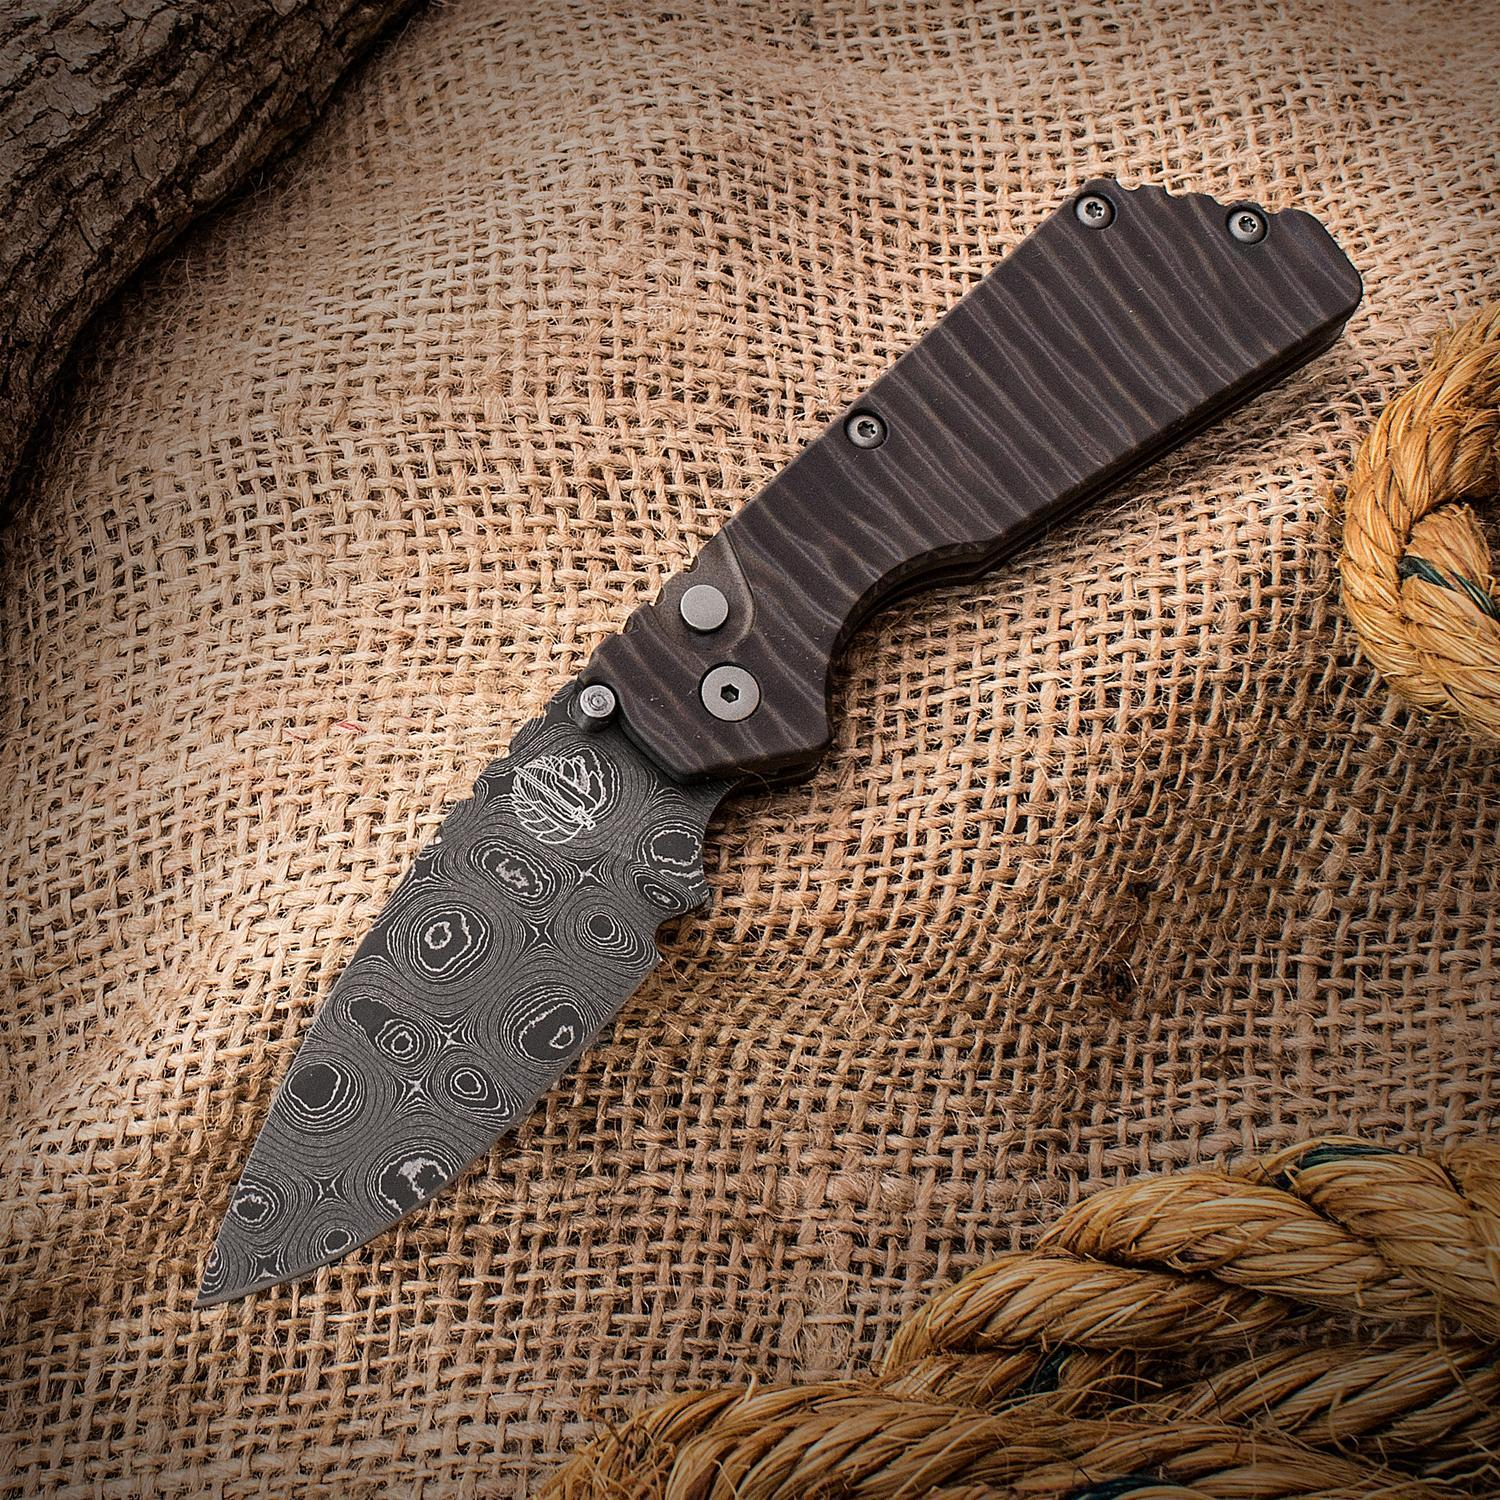 Автоматический складной нож Pro-Strider SnG Auto, Chad Nichols Black Eye Stainless Damascus, Flamed Titanium Handles железная дорога yako y1699035 page 2